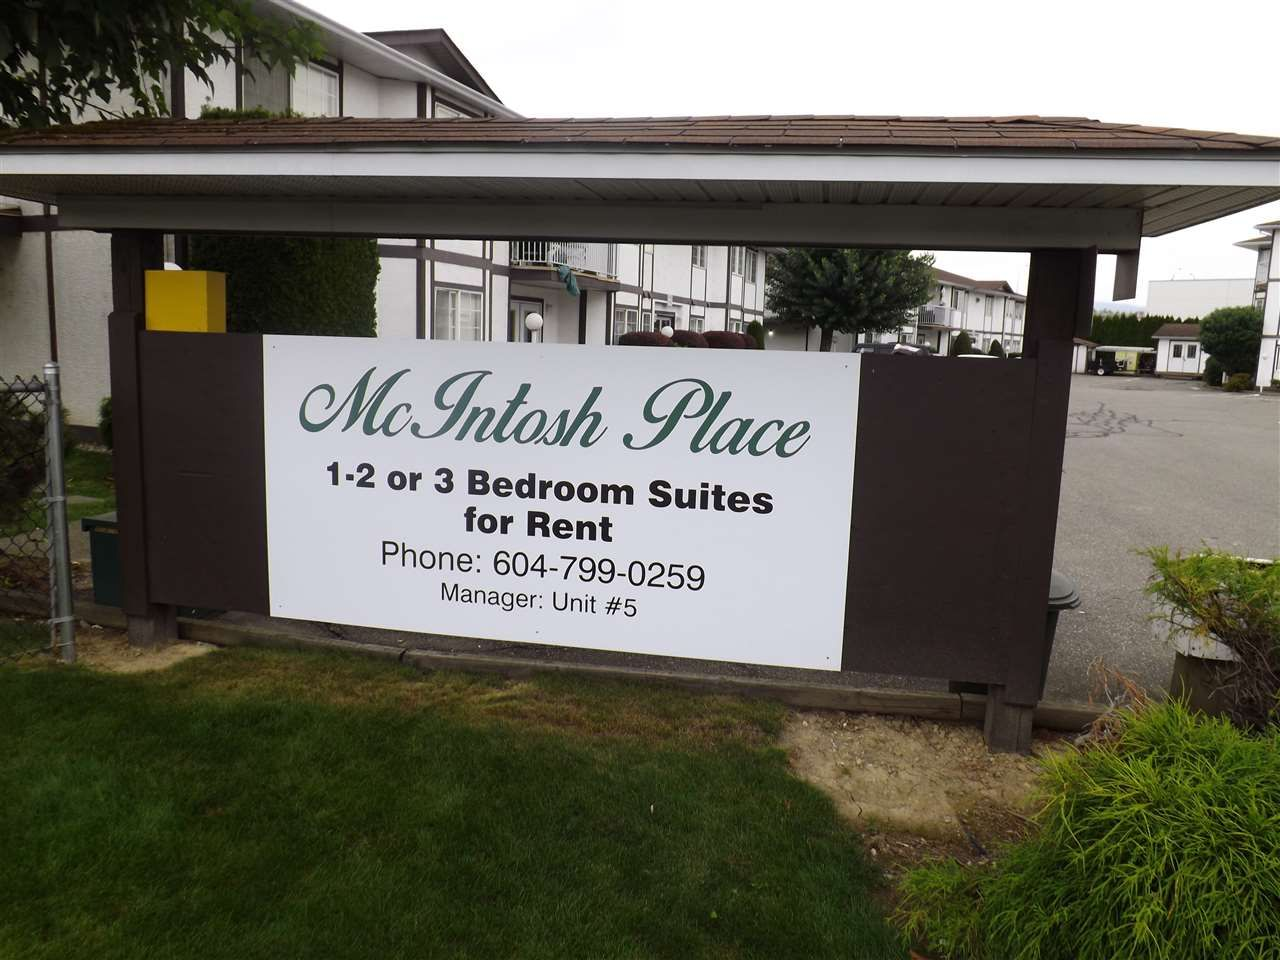 Main Photo: 104A 45655 MCINTOSH Drive in Chilliwack: Chilliwack W Young-Well Condo for sale : MLS®# R2114431